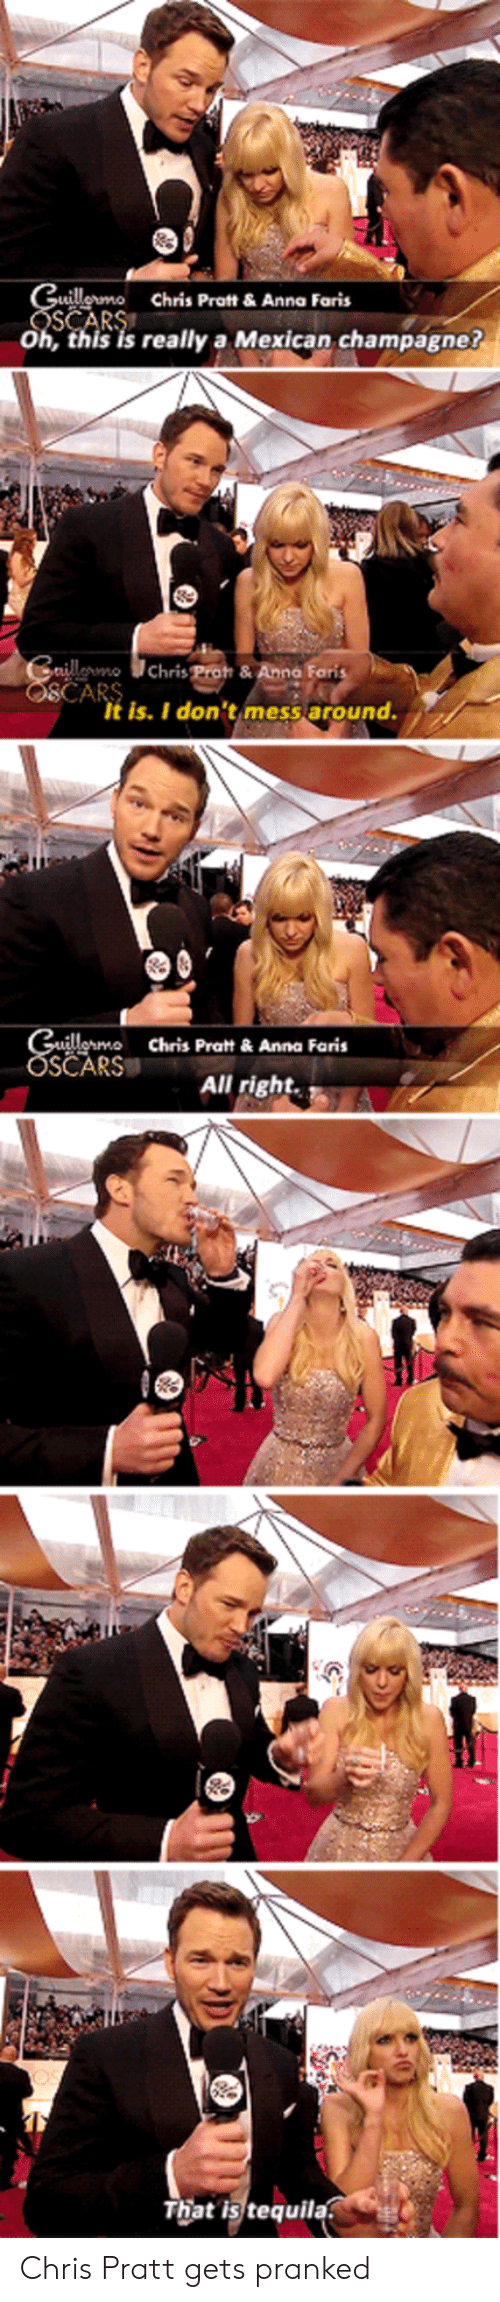 fon: ermo Chris Prot &Anna Faris  Oh, this is really a Mexican champagne?  own  Chris Poh & Anna Fon  It is. I don'timess around.  Chris Pratt&Anna Faris  SČARS  All rightA  That is tequila Chris Pratt gets pranked